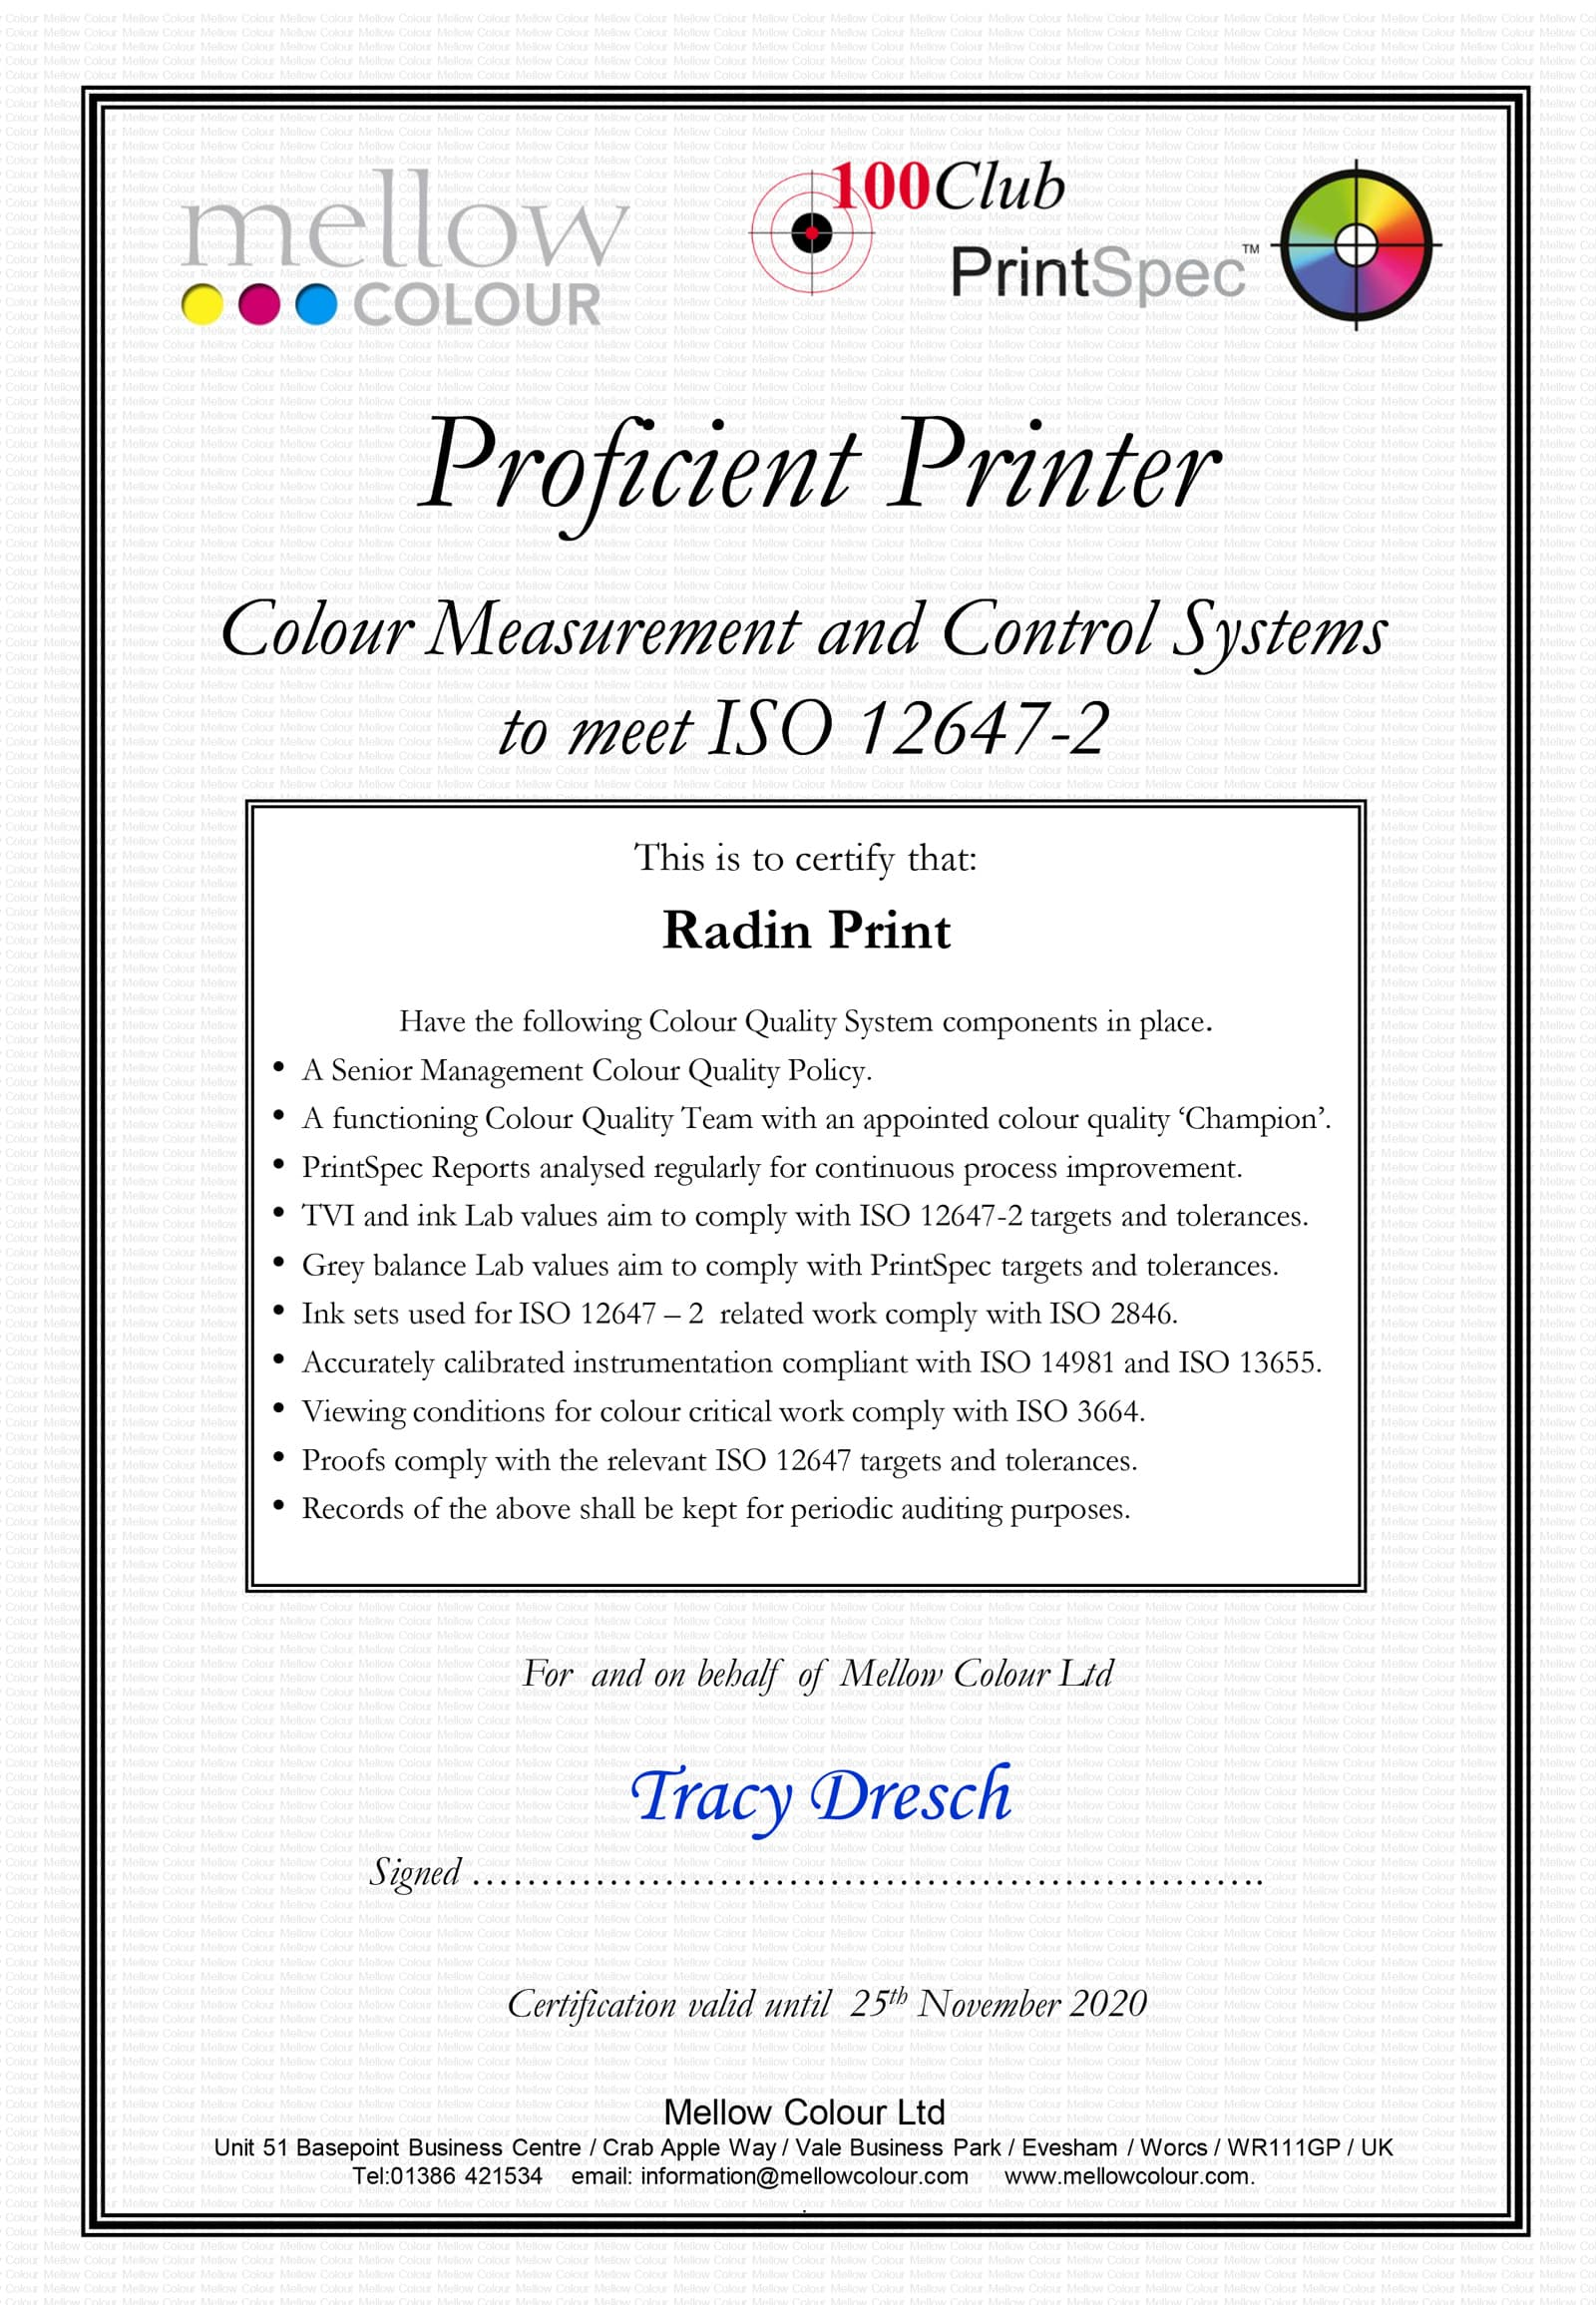 Radin - LIDL 2019 Proficient Printer Certificate